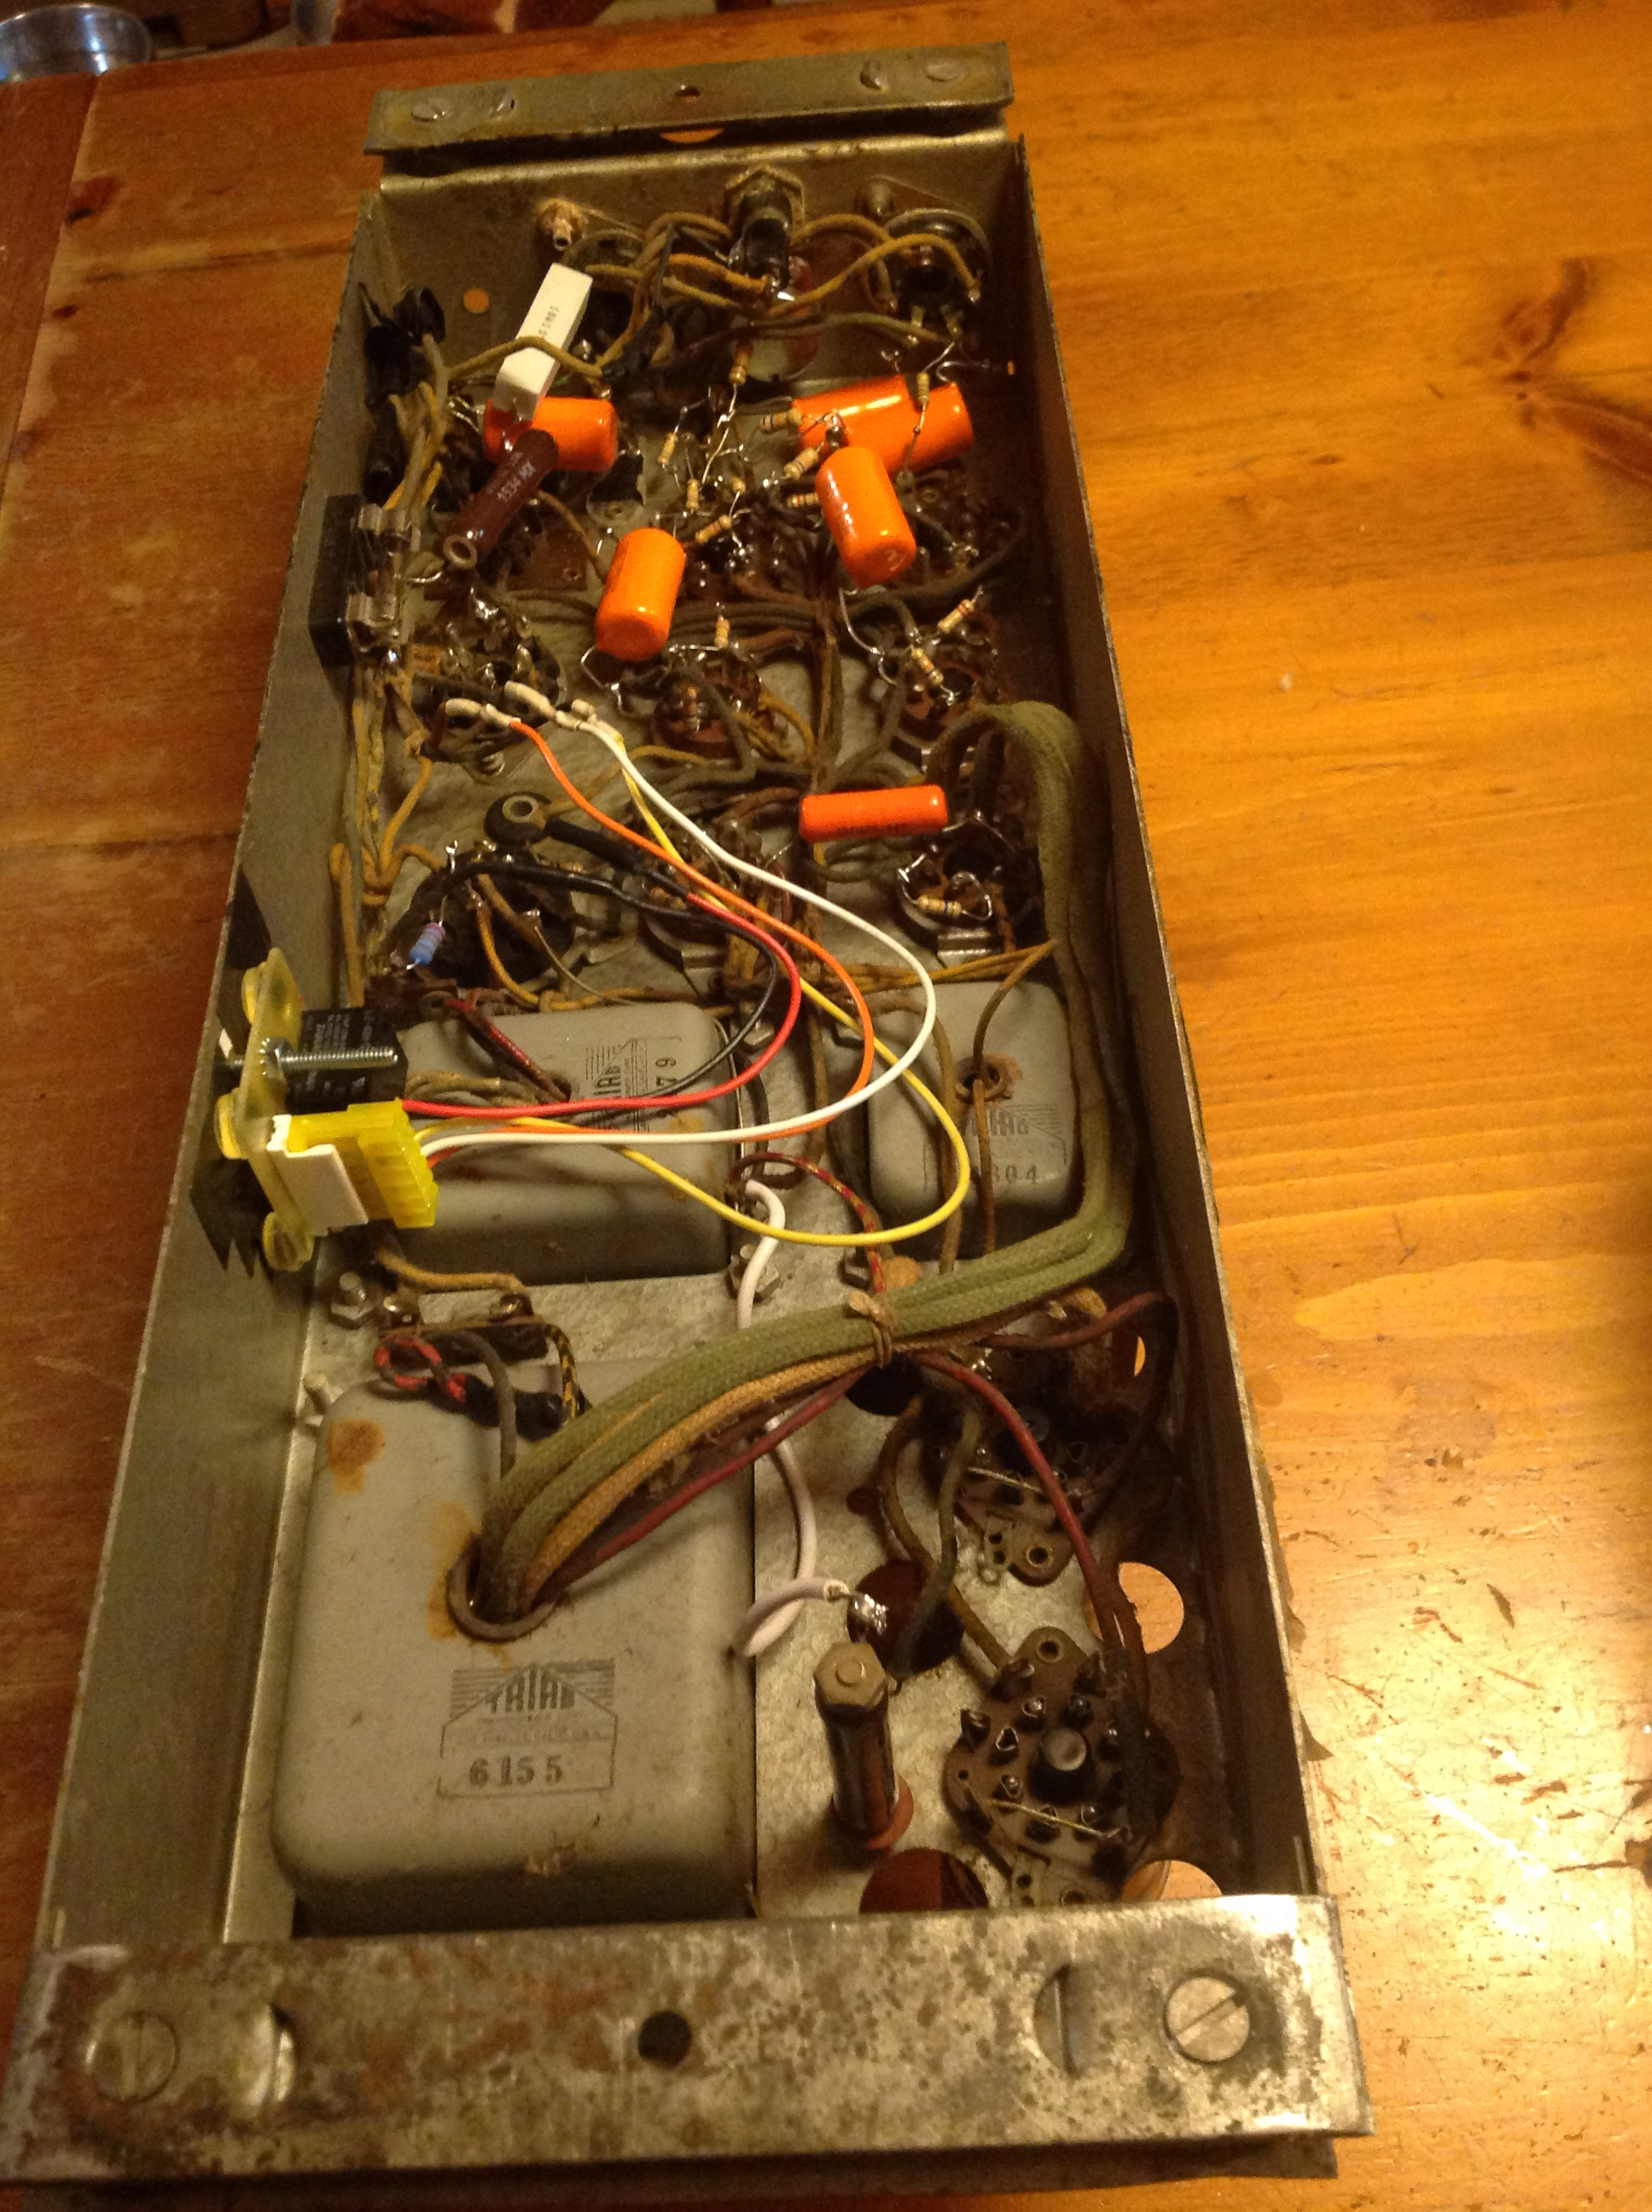 New capacitors, resistors, and relay installed, wiring restored to standard configuration.